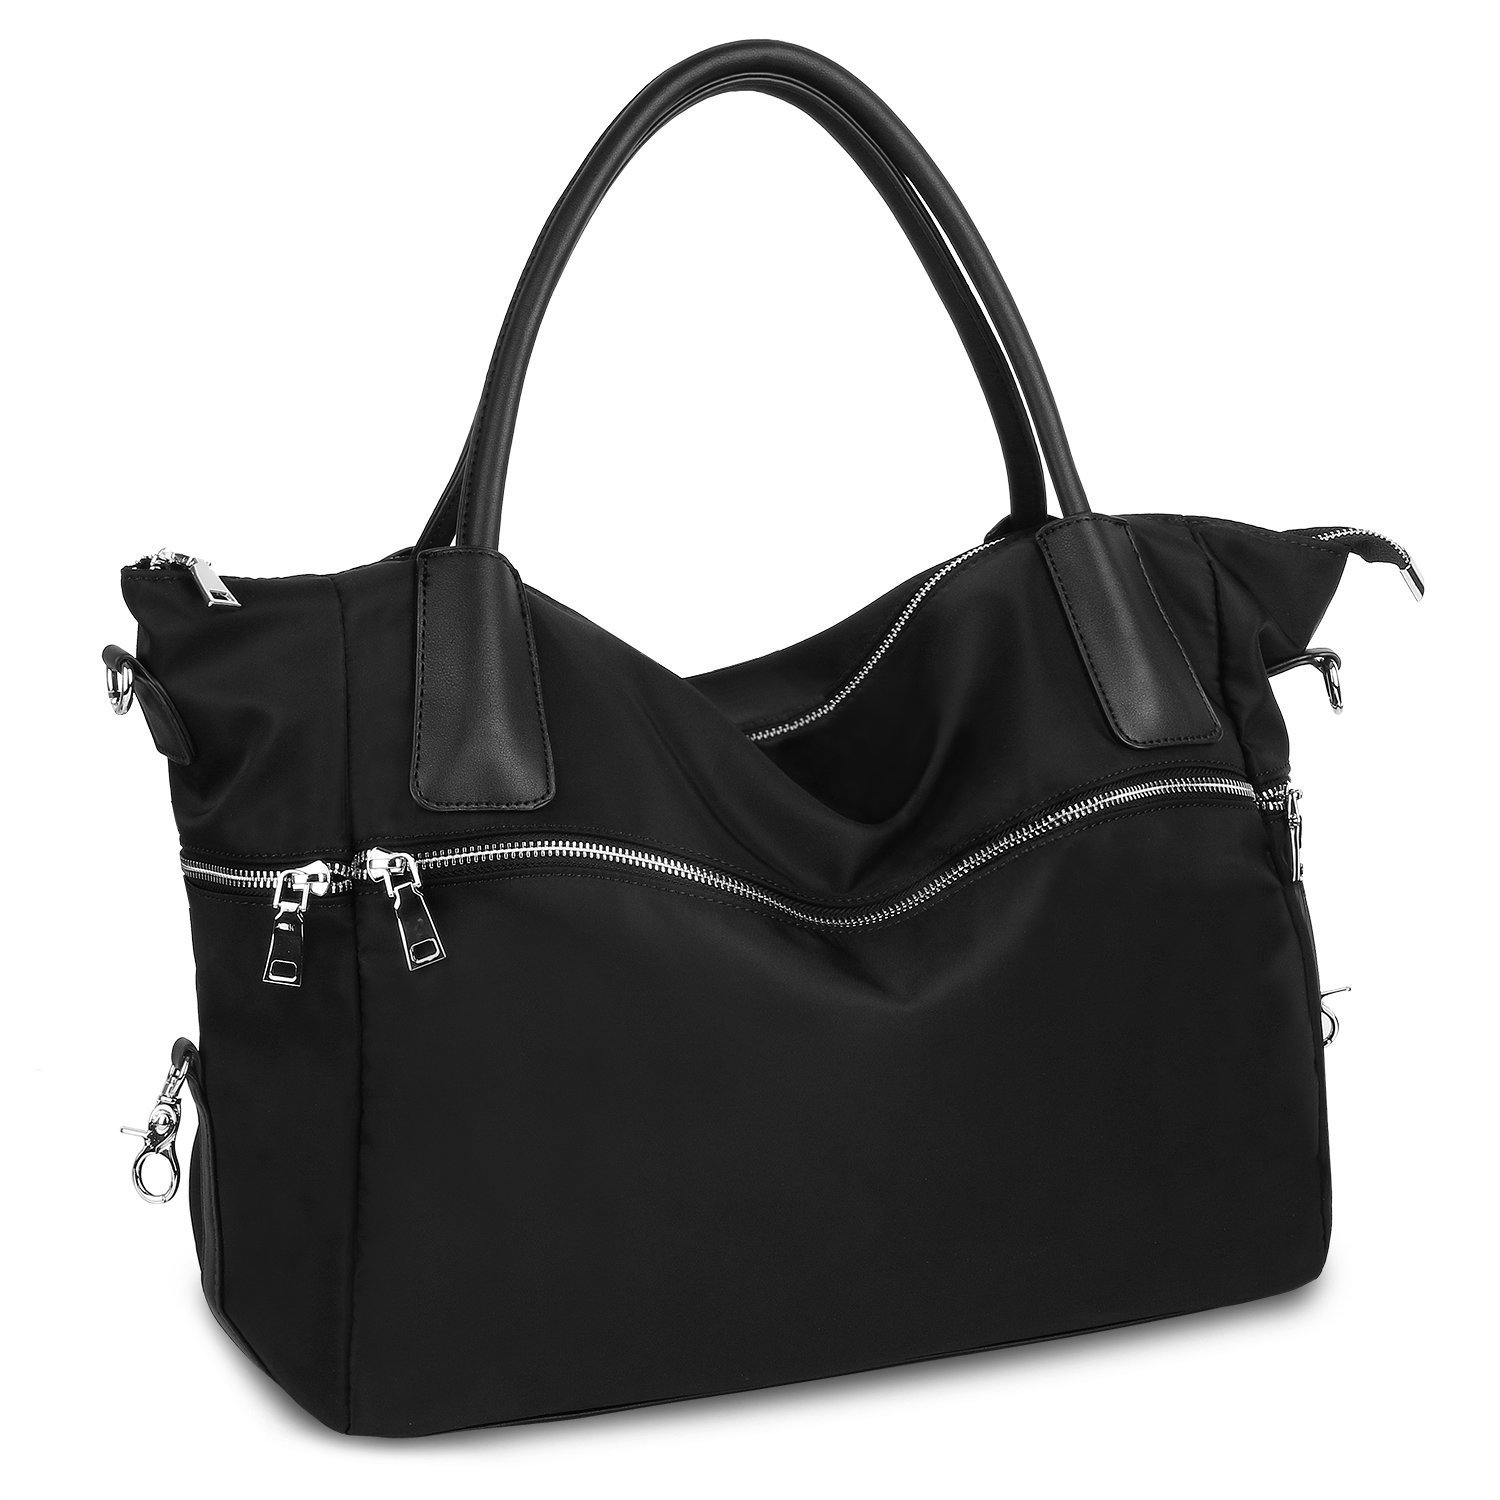 Women's Tote Top Handle Handbag Purse Convertible Shoulder Bag Crossbody Bags with Leather Handle Strap Lightweight Black